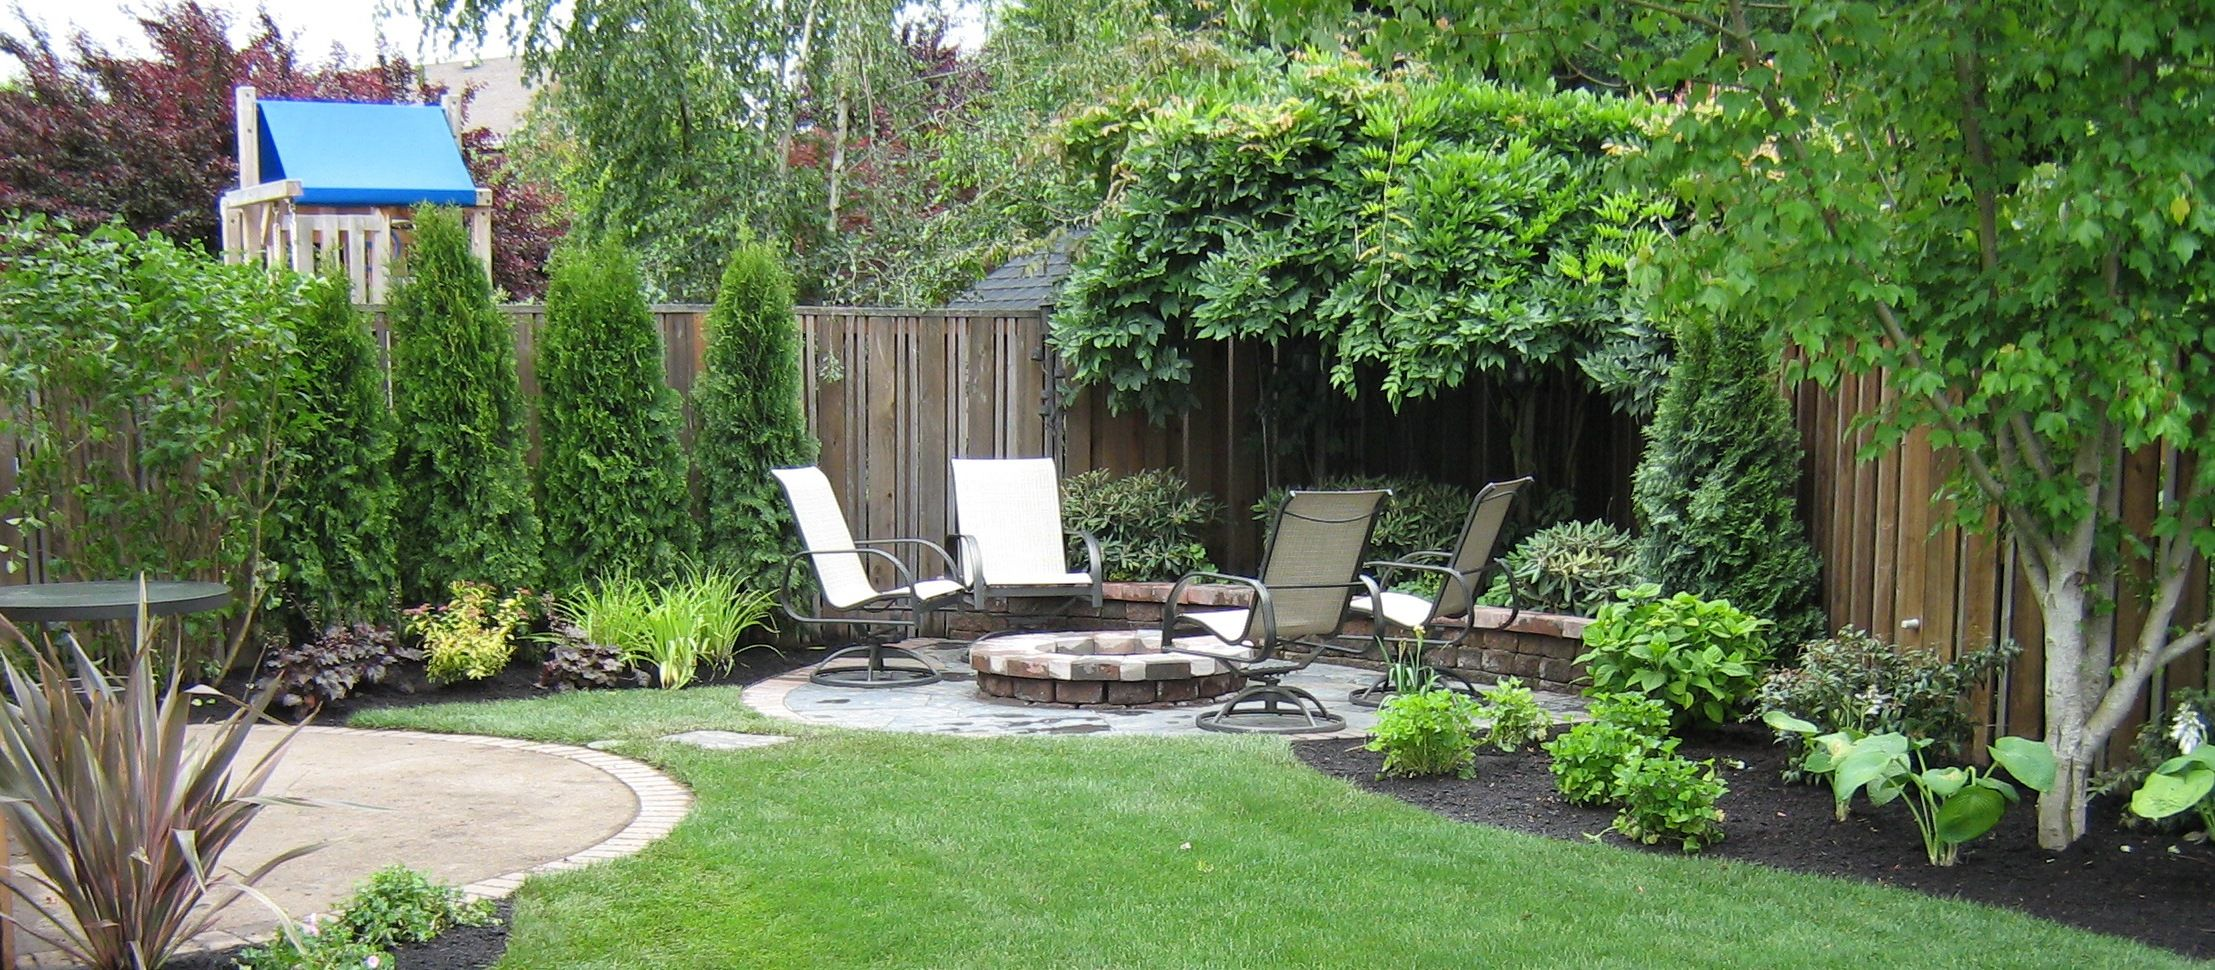 Small backyard landscaping ideas photos garden design for Gartengestaltung 100 qm